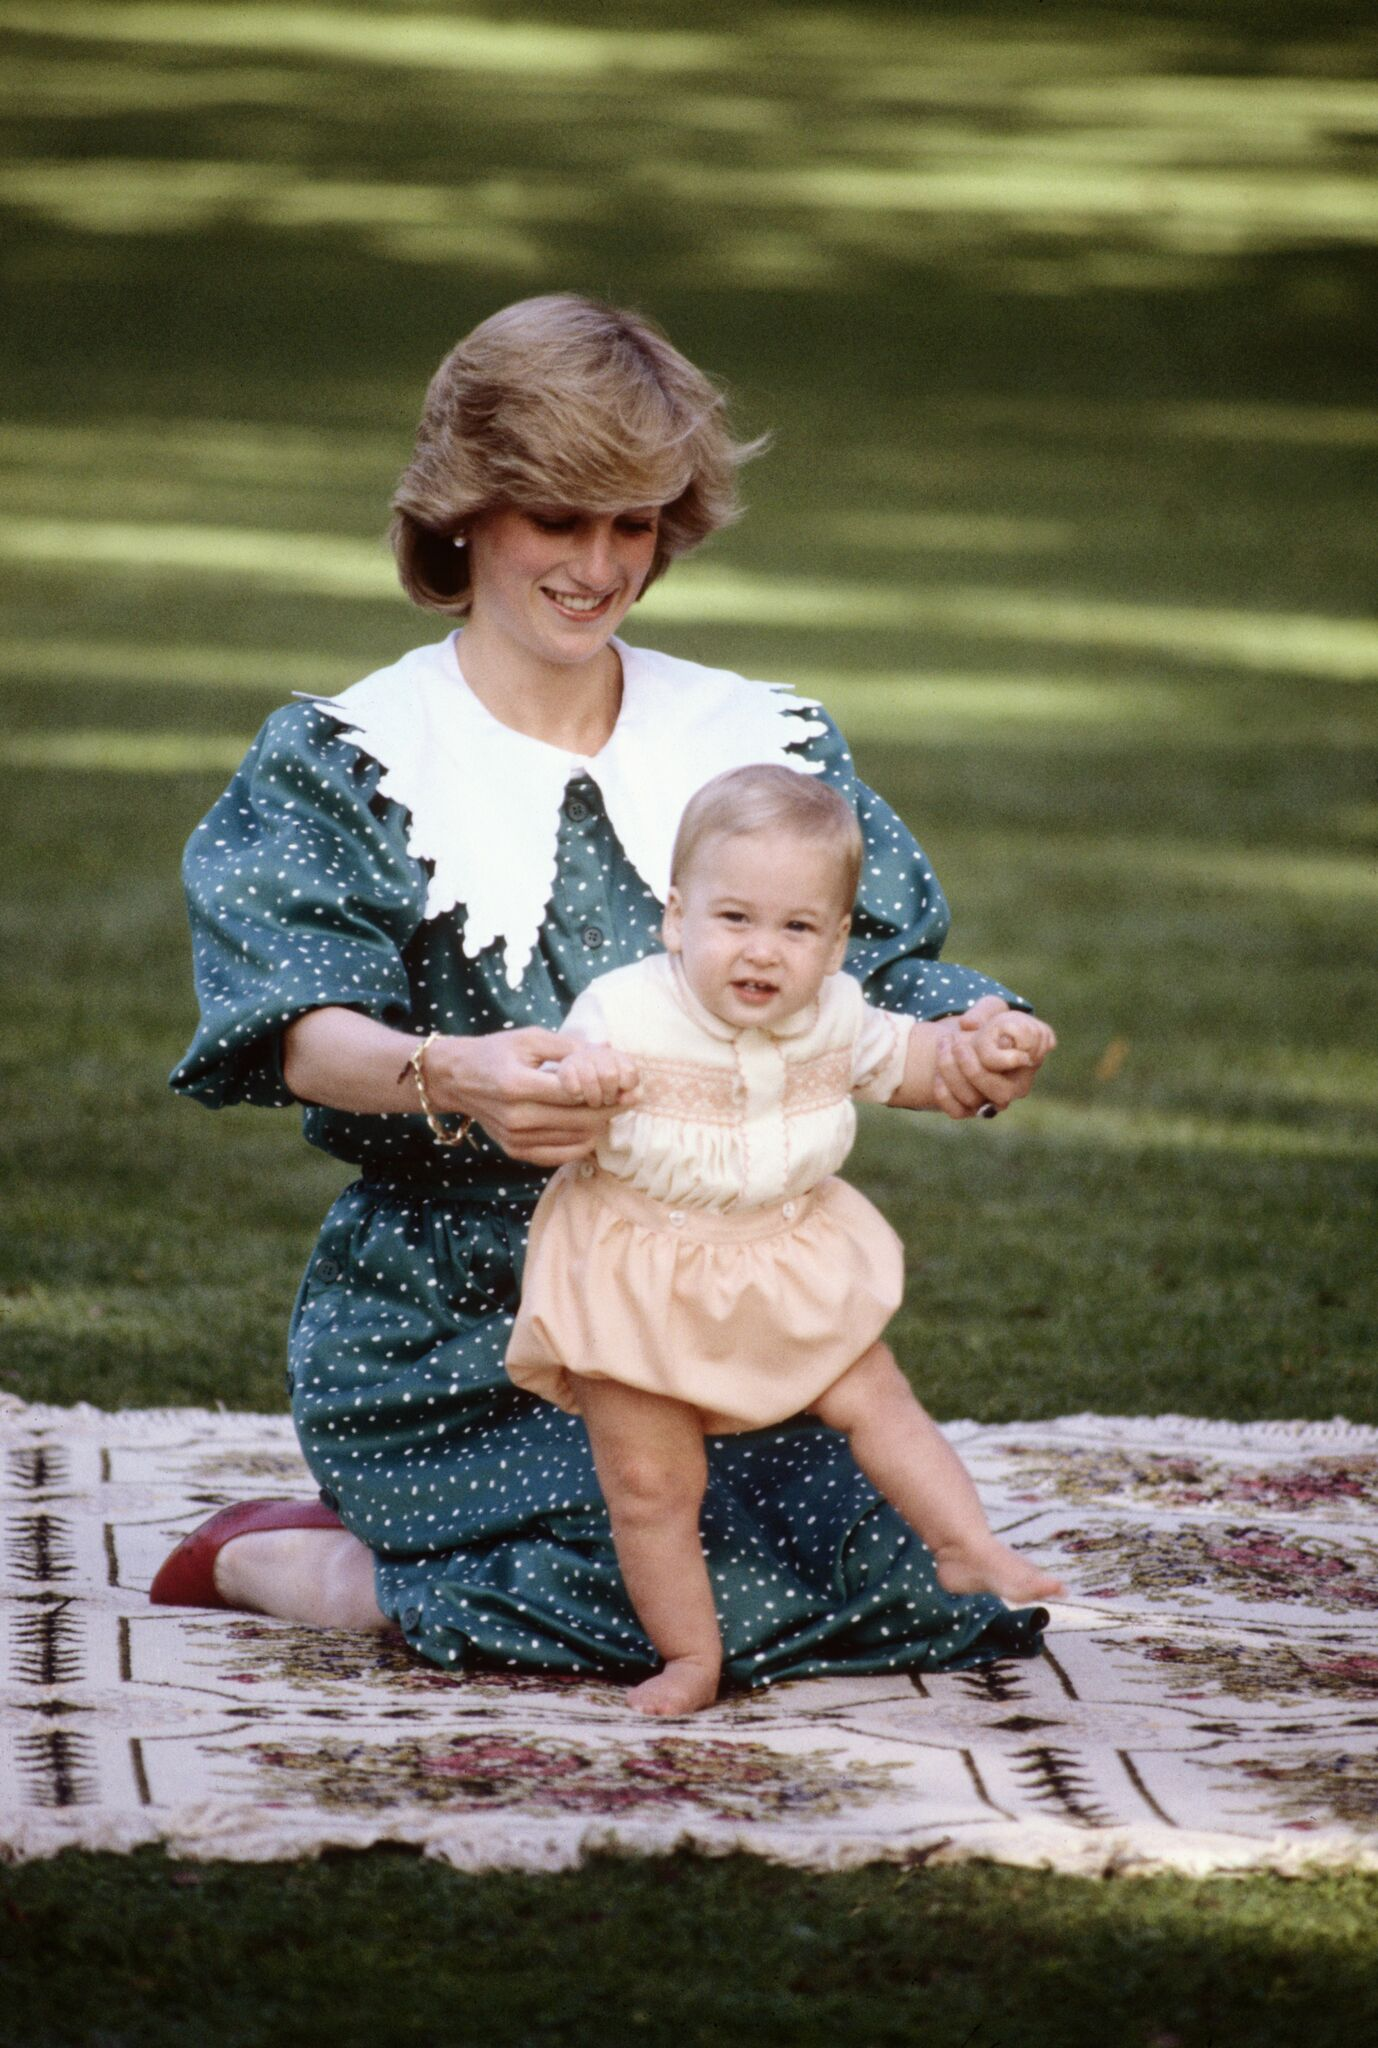 Diana Princess of Wales with Prince William at a photocall on the lawn of Government House on April 23, 1983 | Getty Images /  Global Images Ukraine